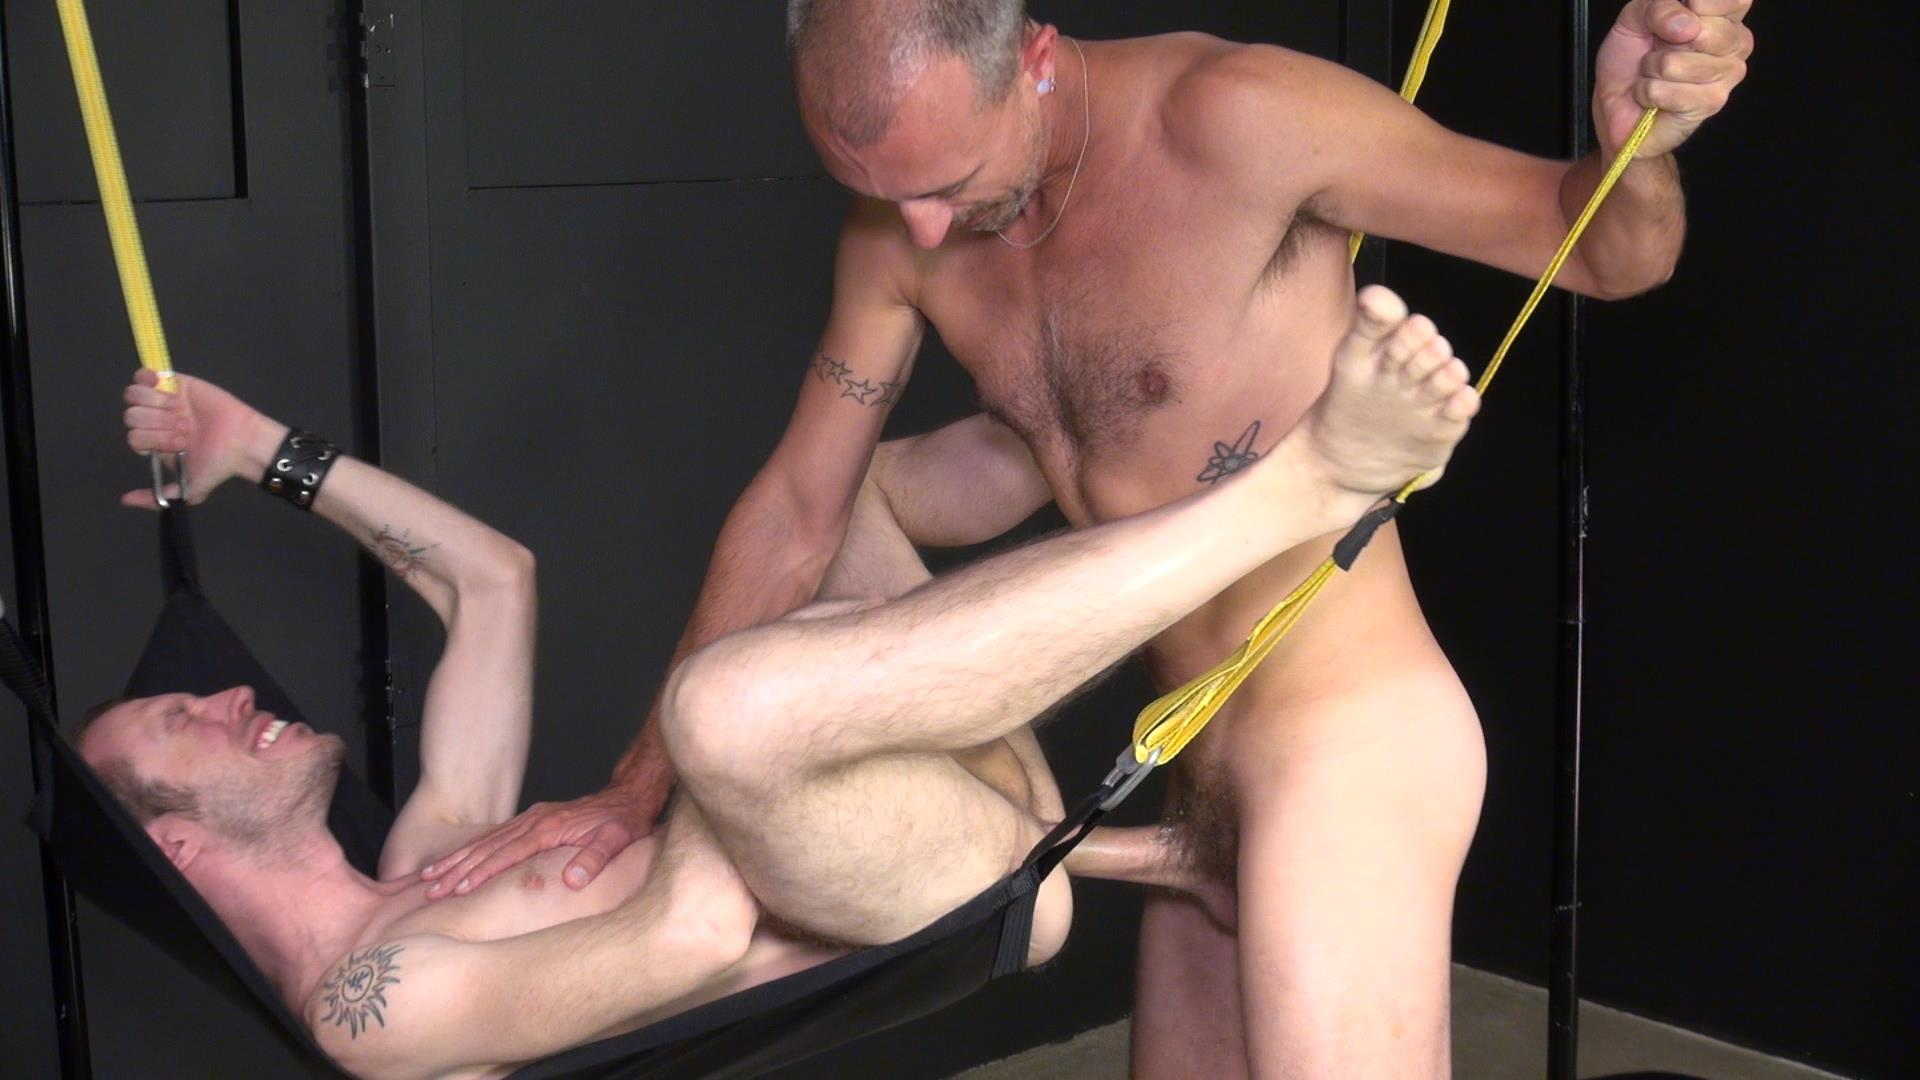 Raw-and-Rough-Blake-Dawson-and-Super-Steve-Horse-Cock-Bareback-Breeding-Amateur-Gay-Porn-07 Huge Cock Bareback Breeding A Tight Hole In A Sex Sling